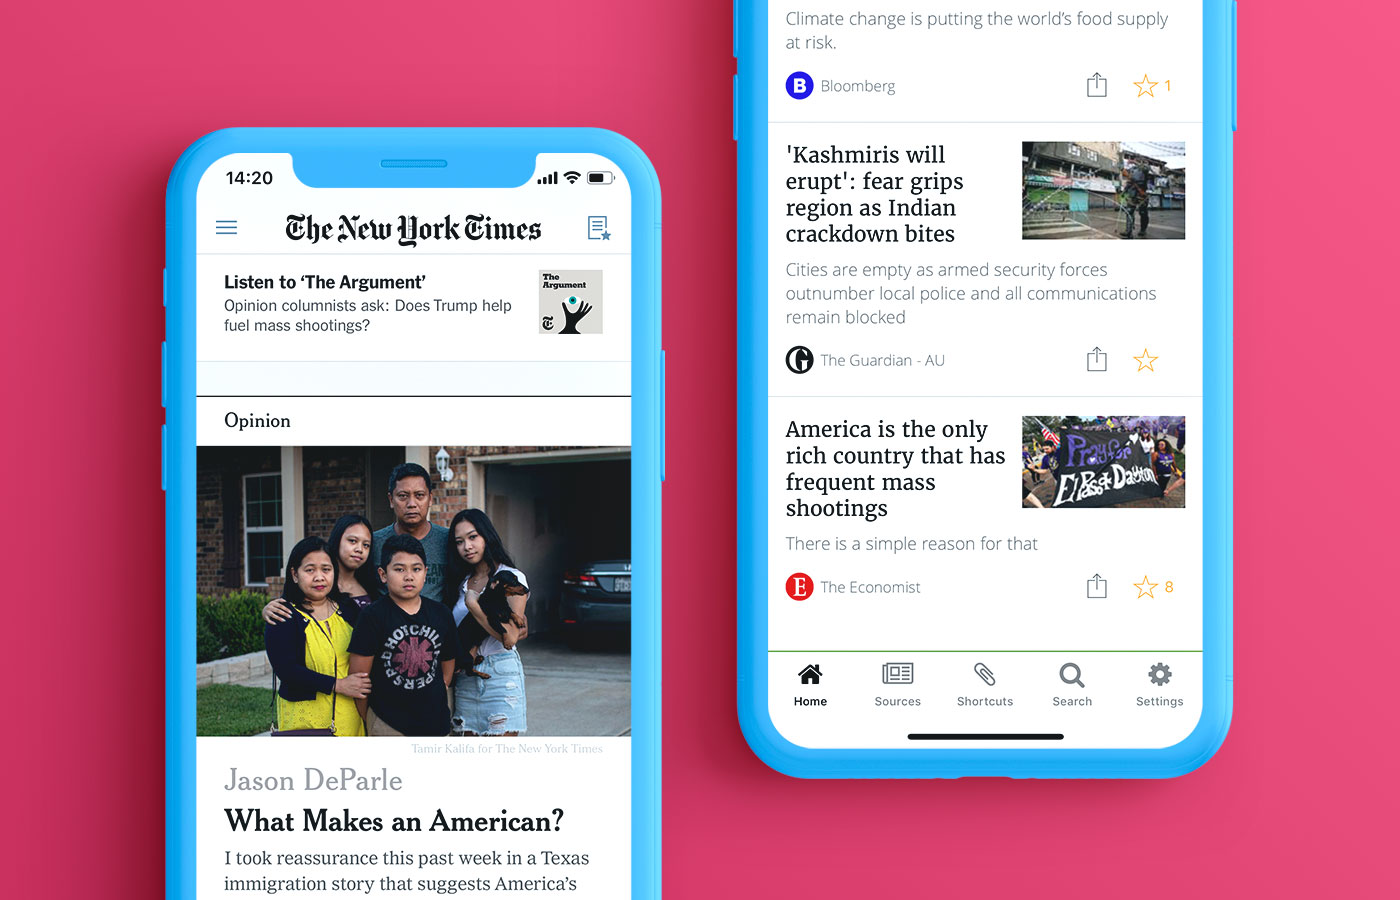 #Features a native news aggregator app